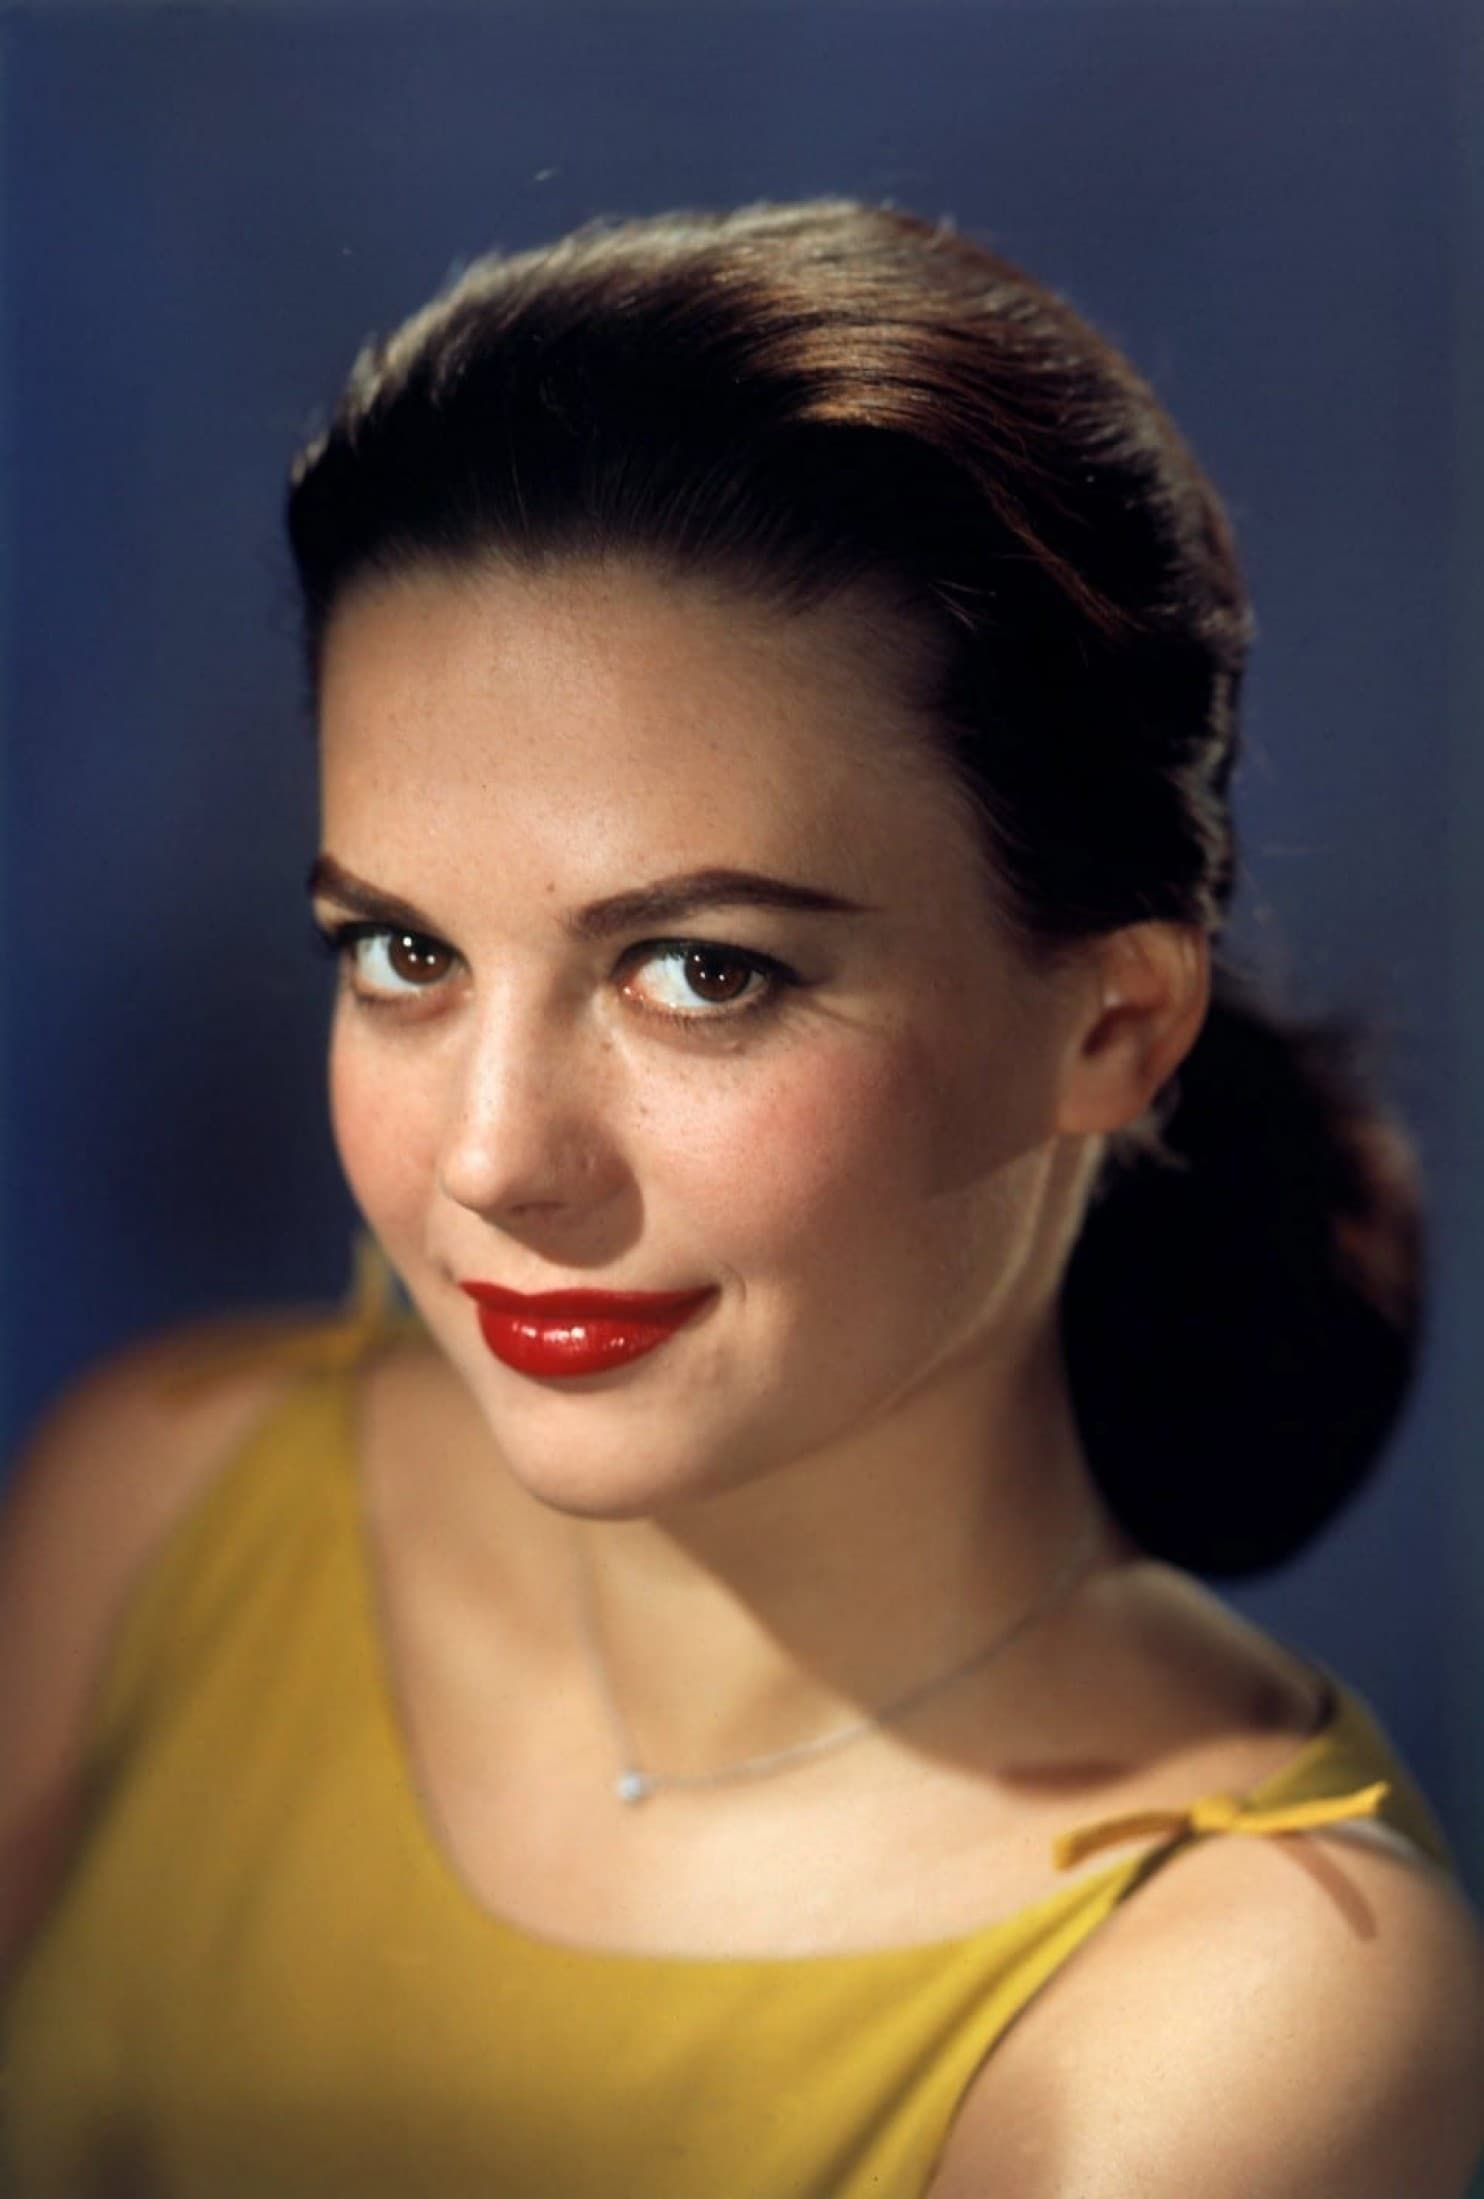 Natalie Wood drowning: Robert Wagner reportedly a 'person of interest' - The Washington Post